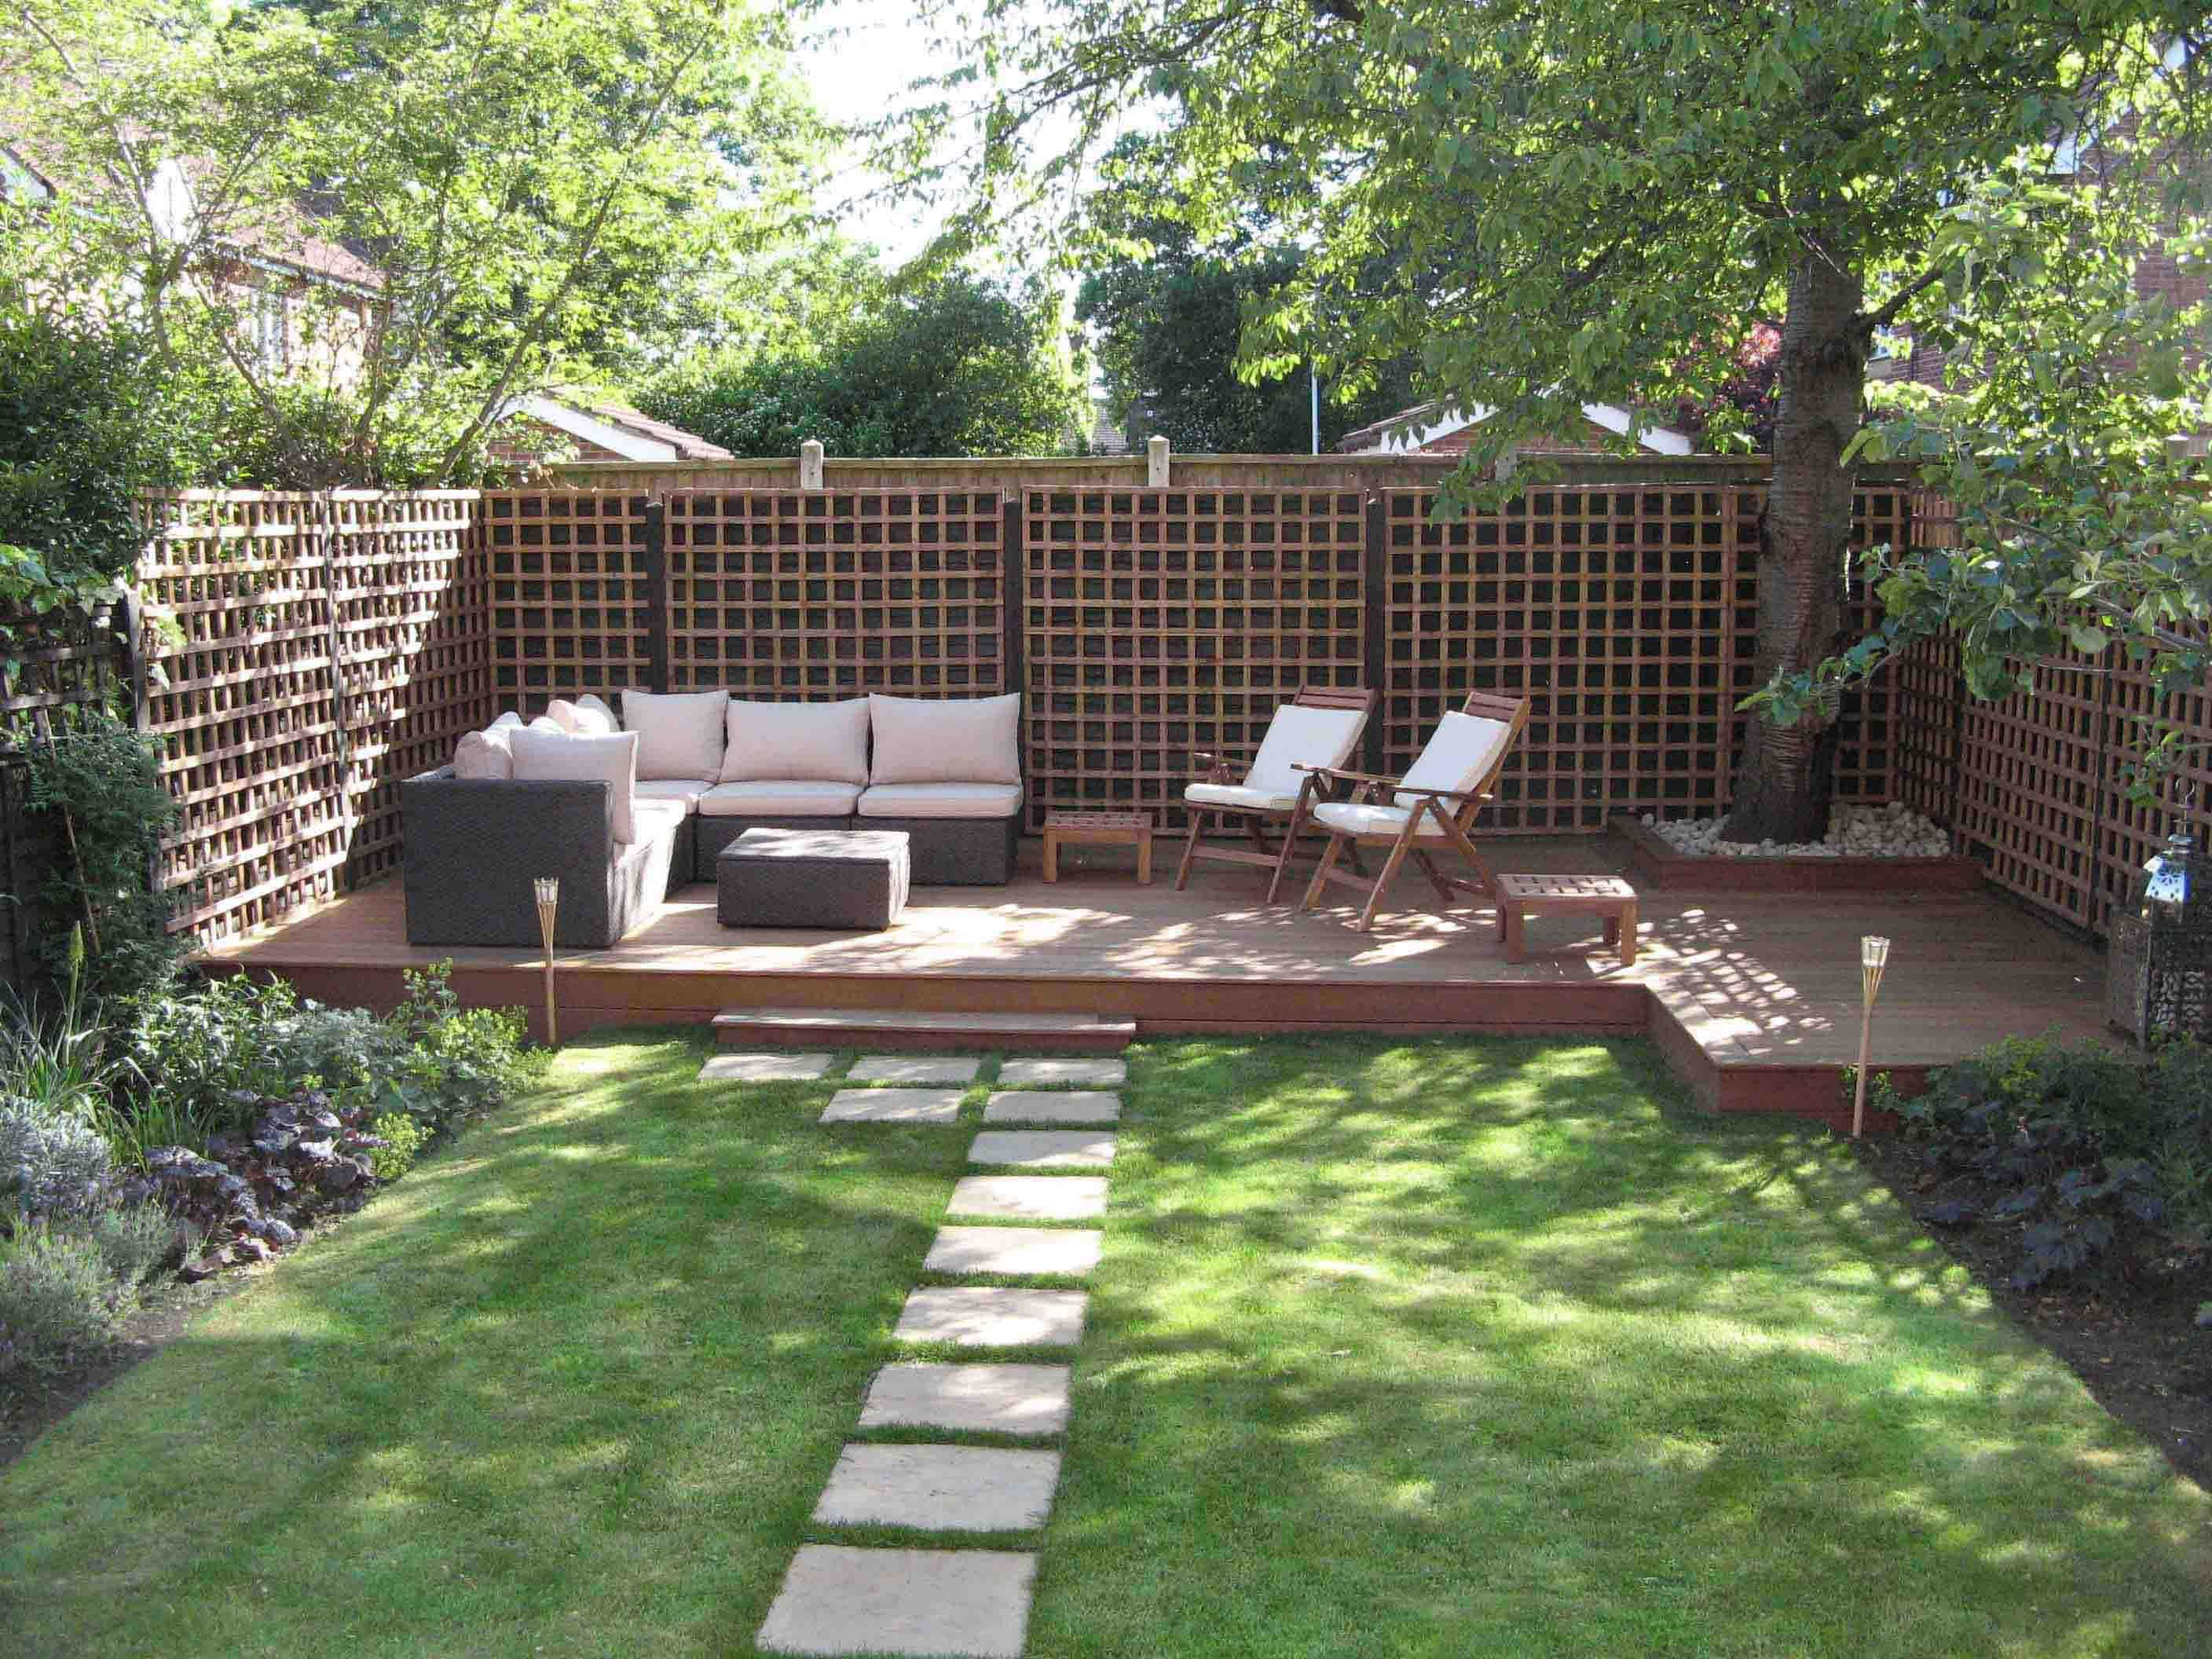 Garden Design Backyard 25 landscape design for small spaces | low deck, yards and decking